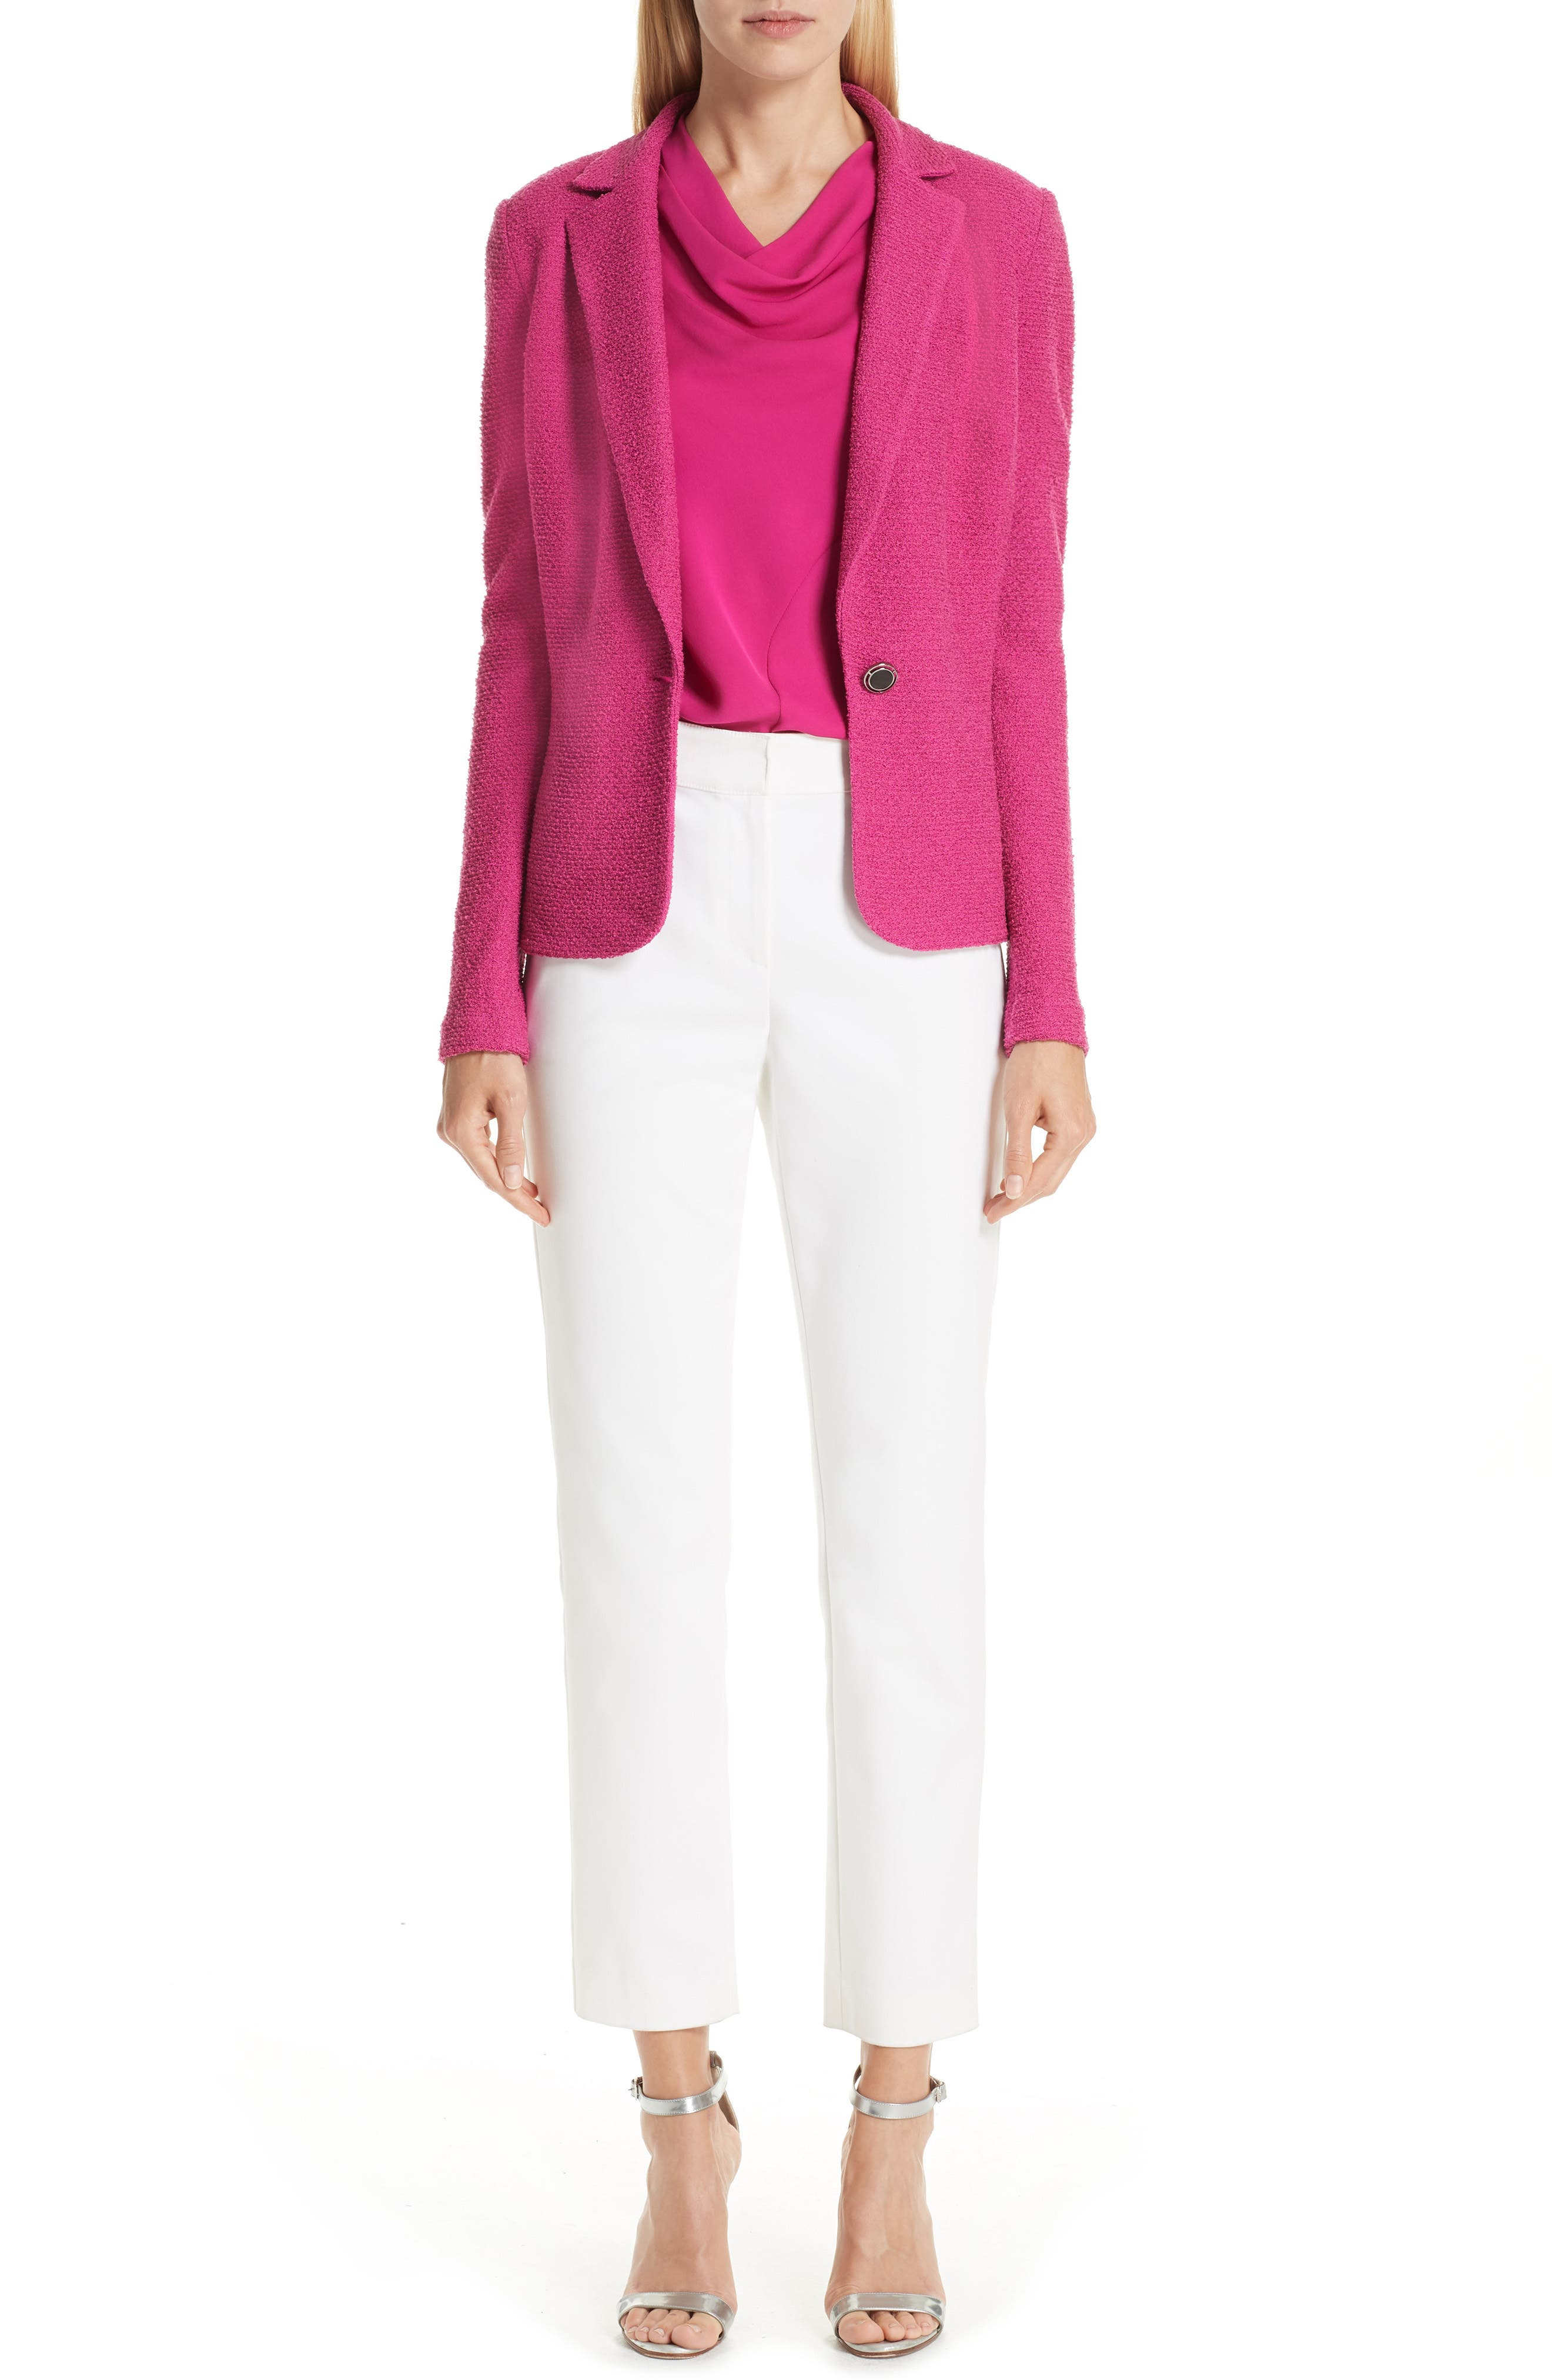 ST. JOHN COLLECTION, Refined Knit Jacket, Alternate thumbnail 8, color, CAMELLIA